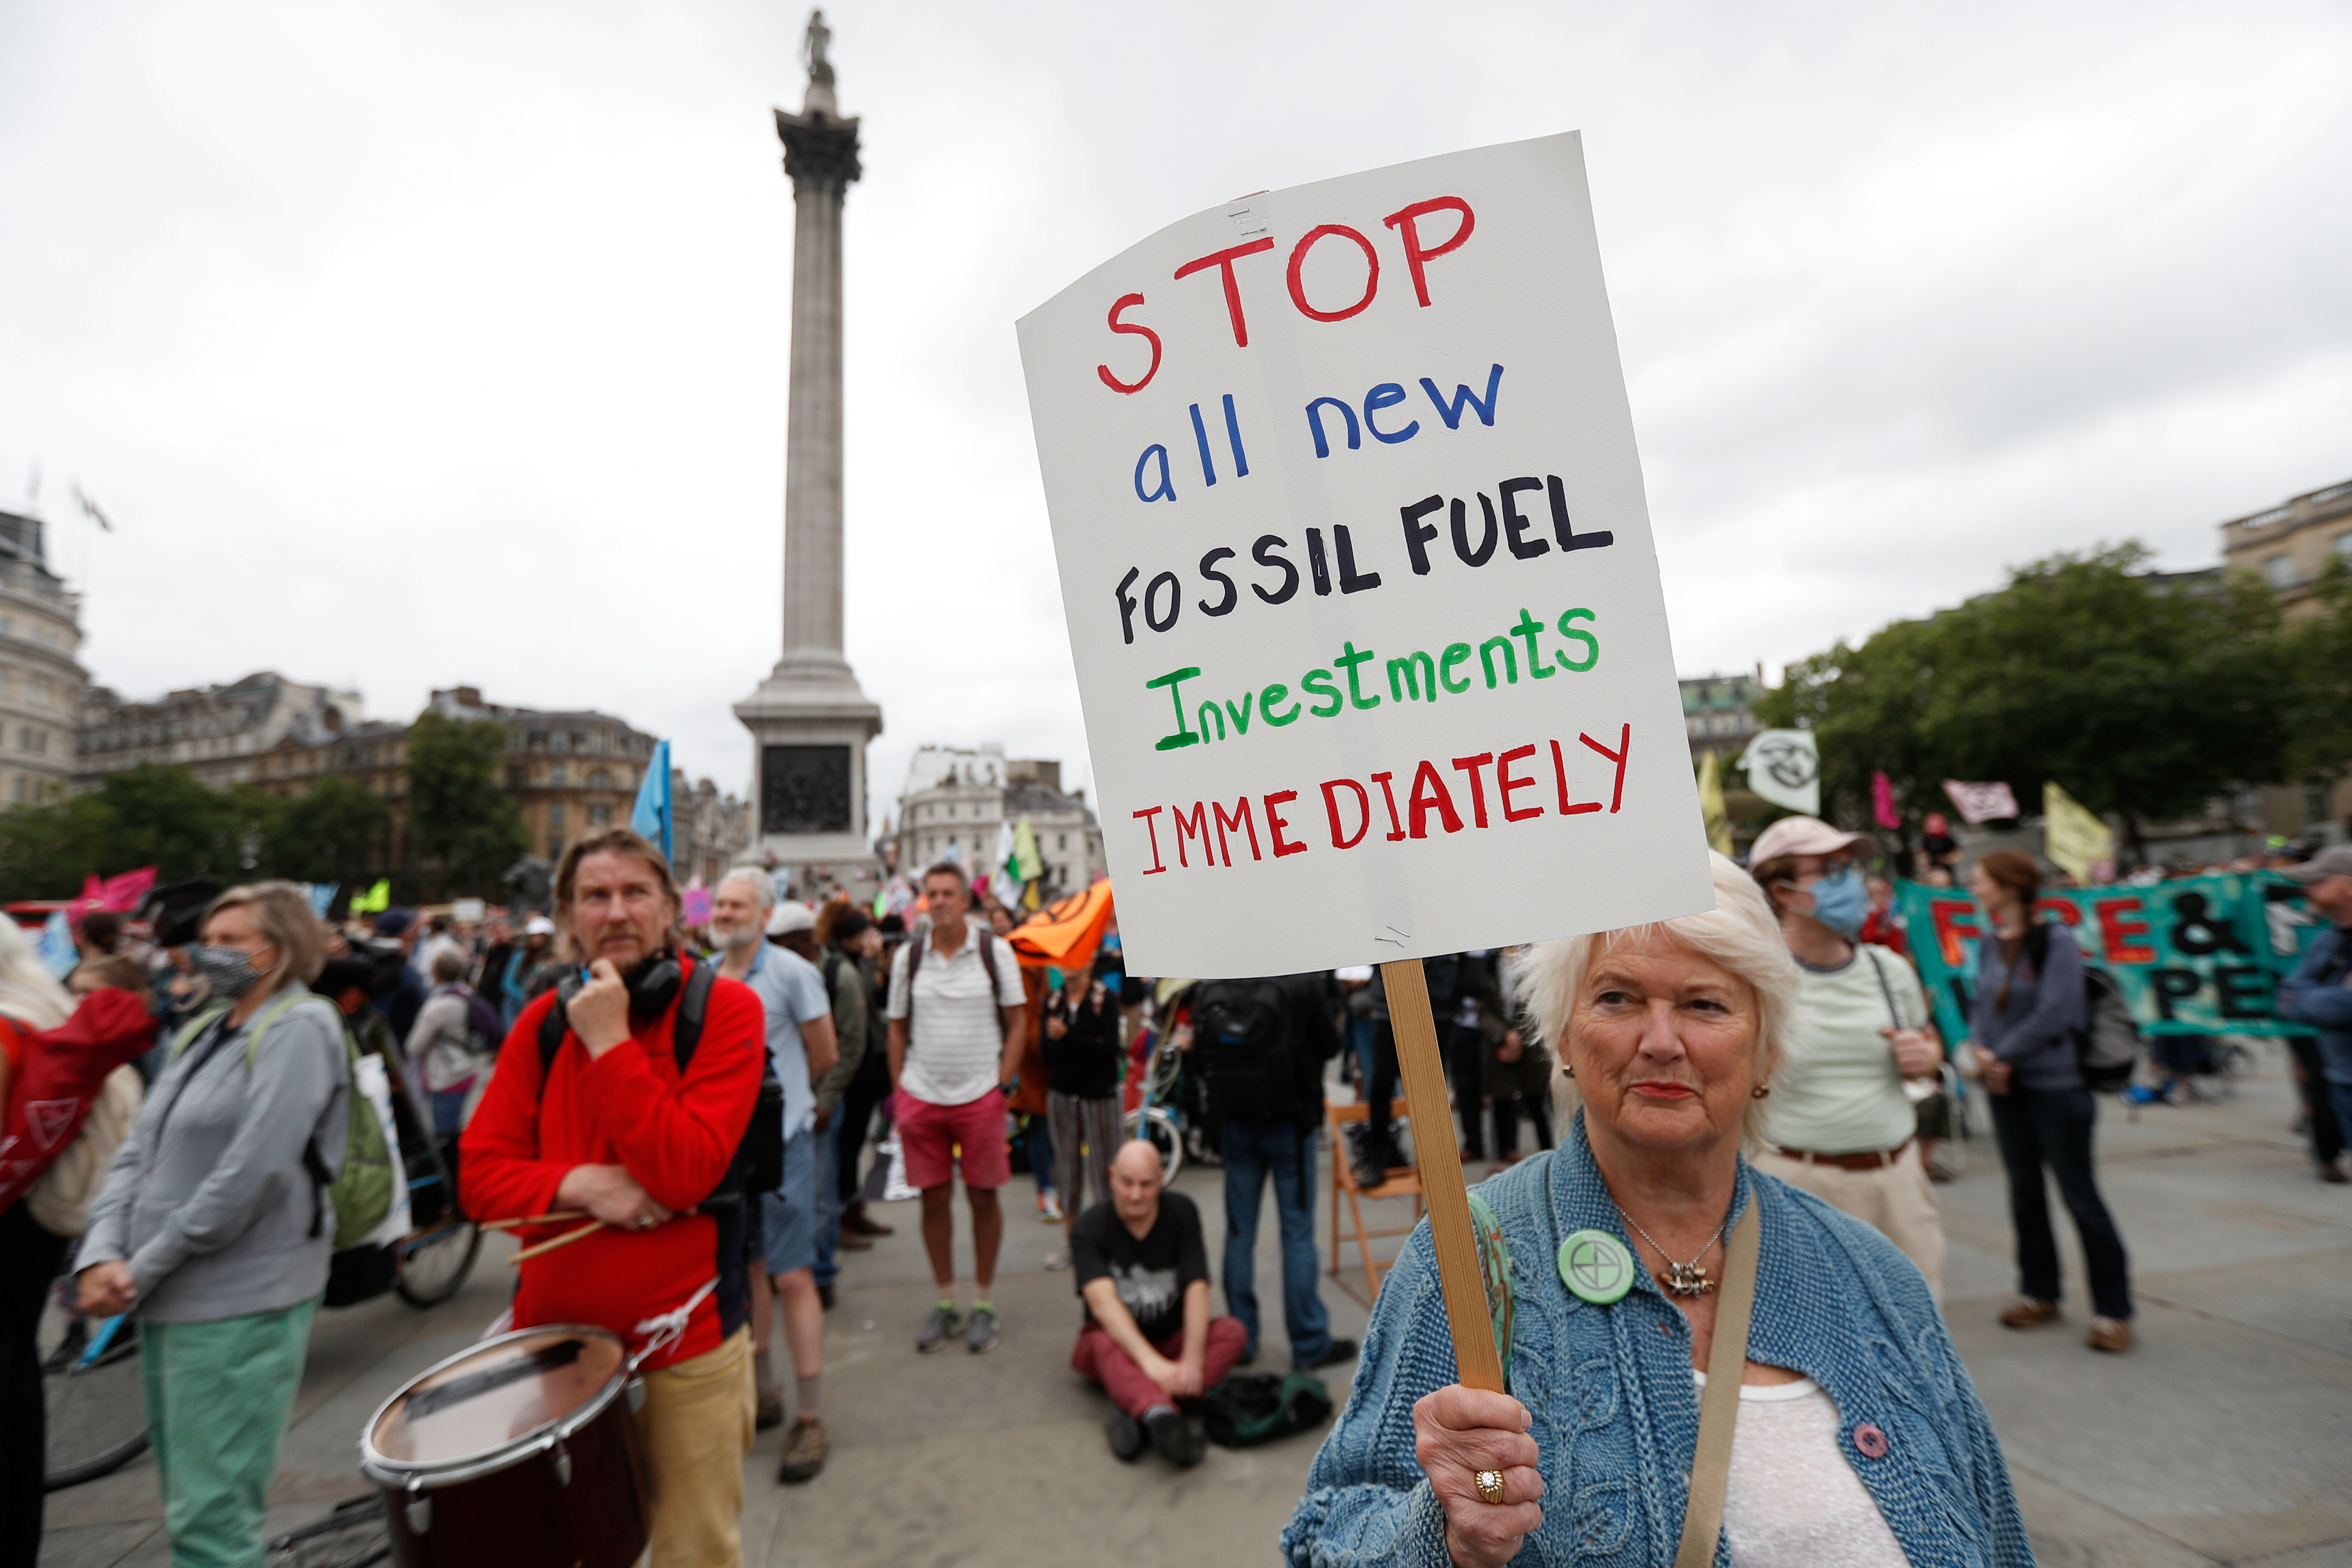 A demonstrator holds a sign during a protest of Extinction Rebellion climate activists at Trafalgar Square, in London, Britain August 23, 2021. REUTERS/Peter Nicholls - RC2XAP9QT57K